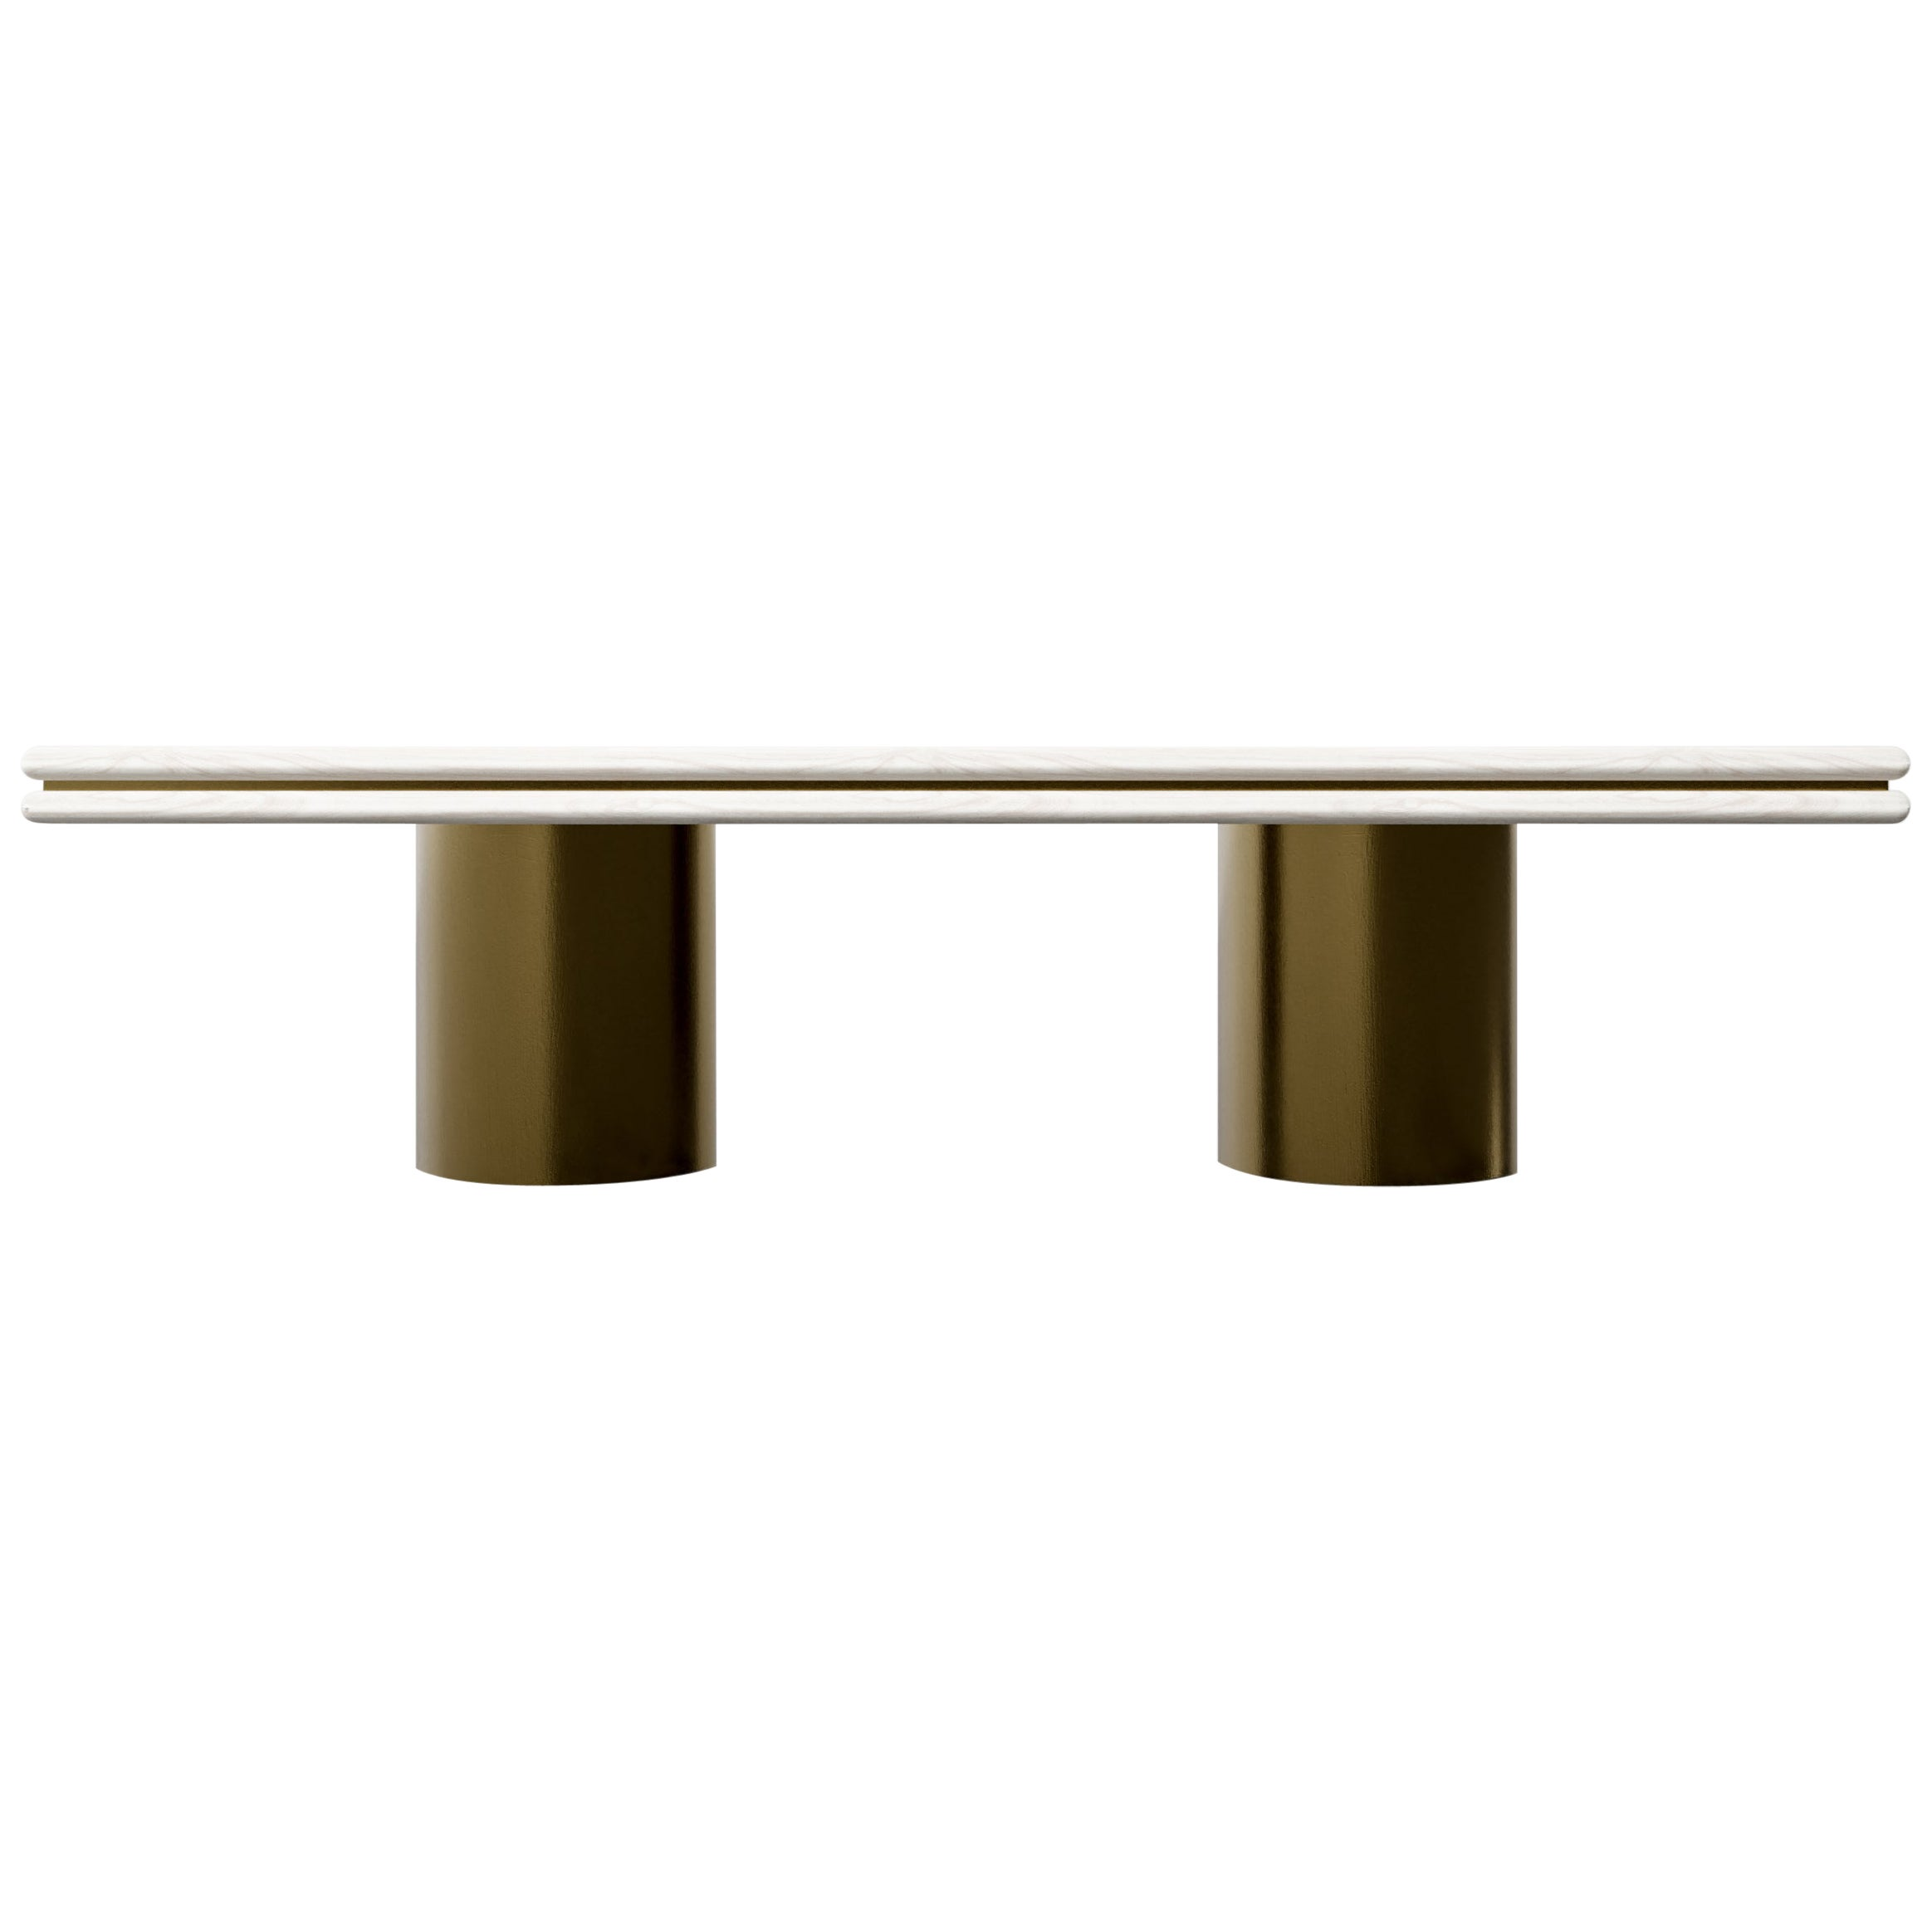 STACKED DINING TABLE - Modern Wooden Dining Table with Metal Inlay and Bases